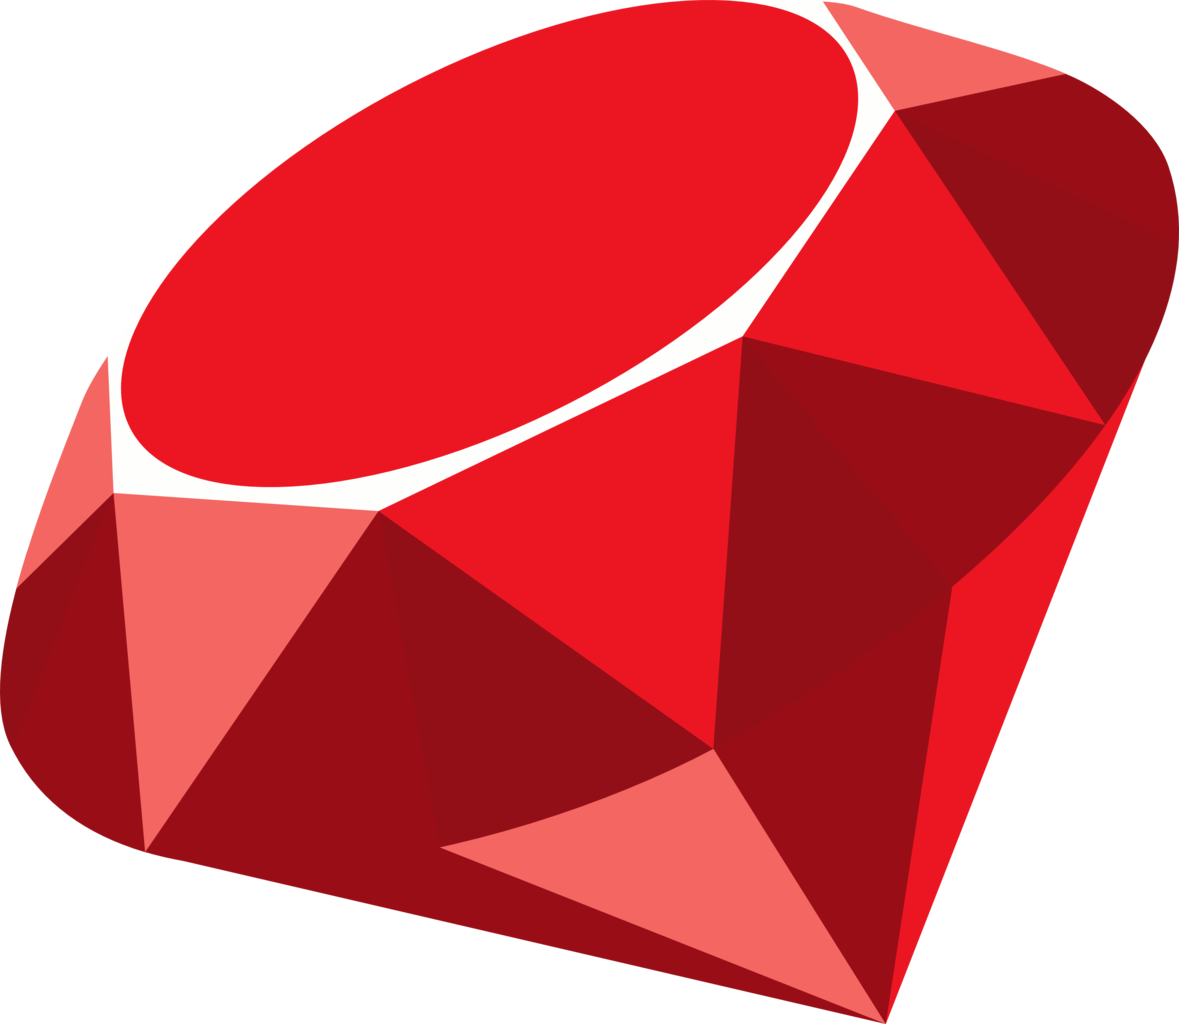 image transparent ruby vector mlp #102454575